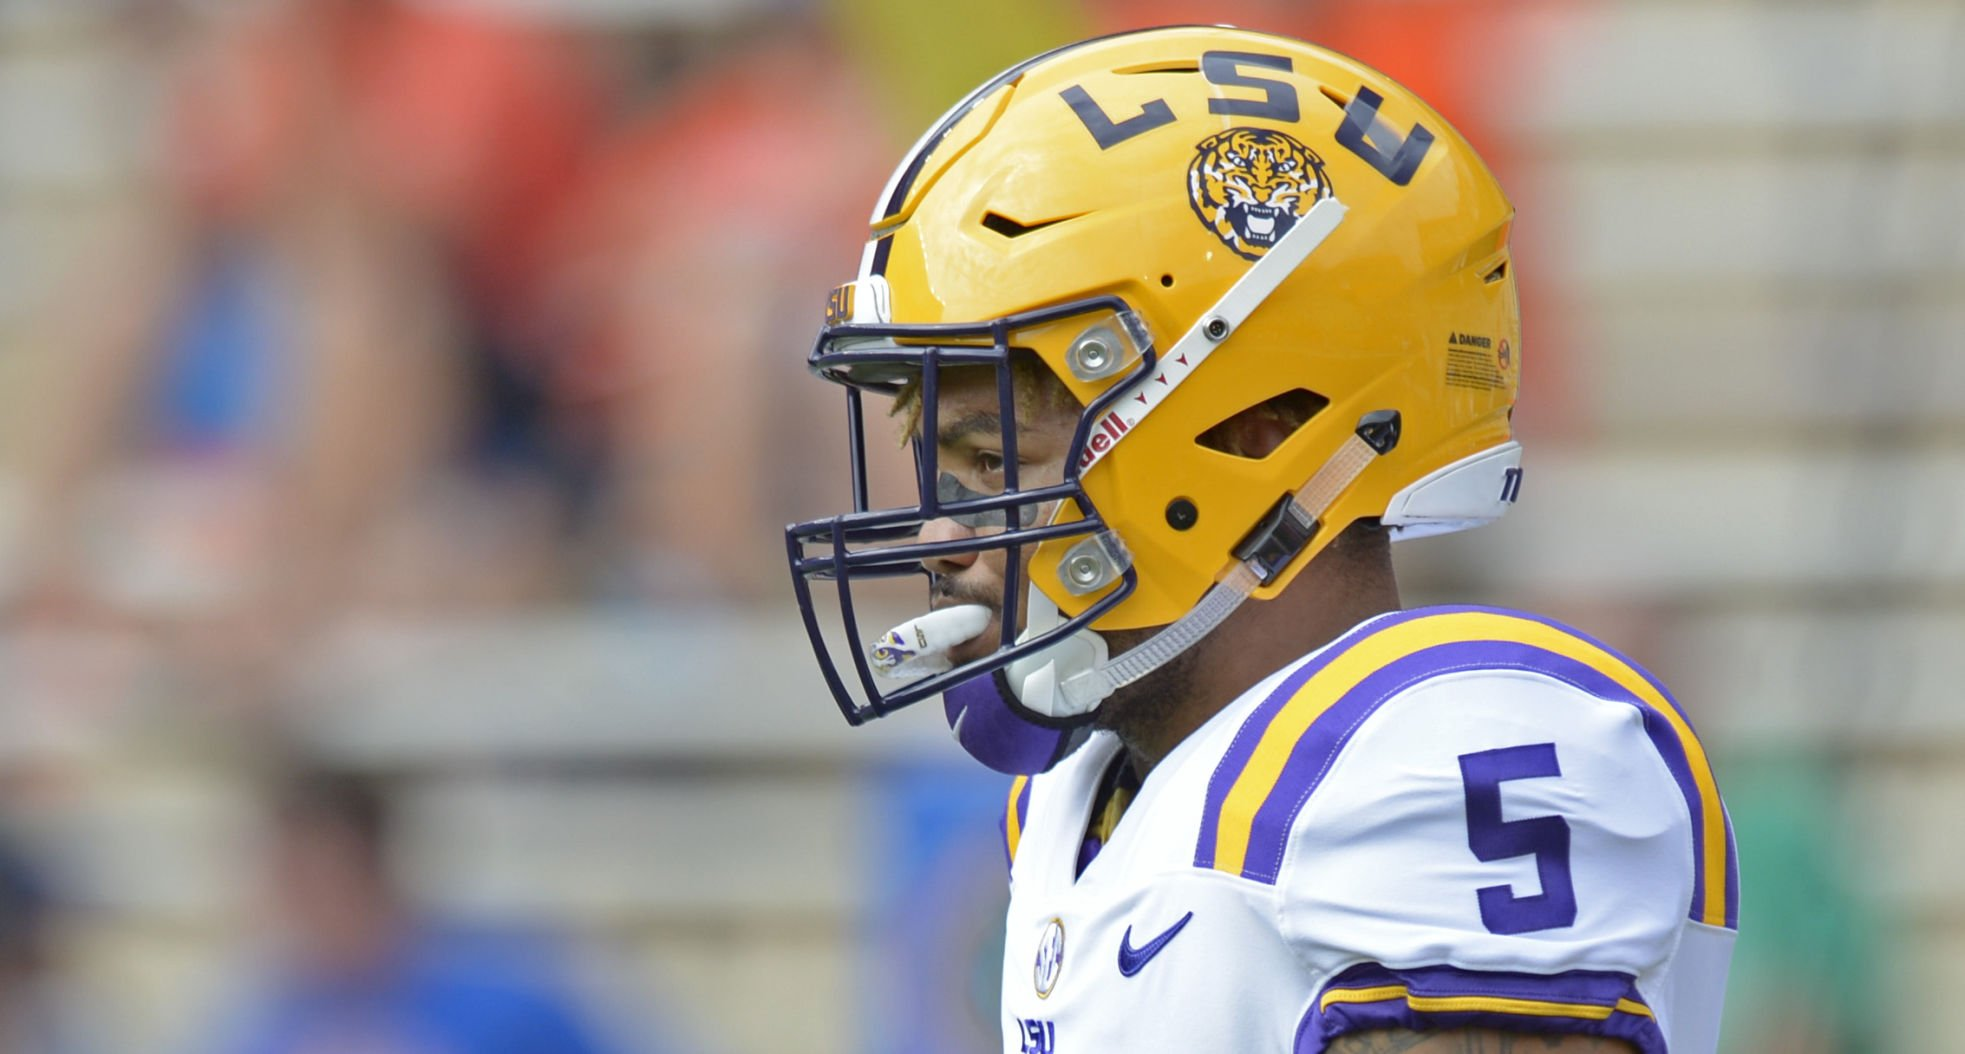 LSU bounces back, wins at No. 21 Florida